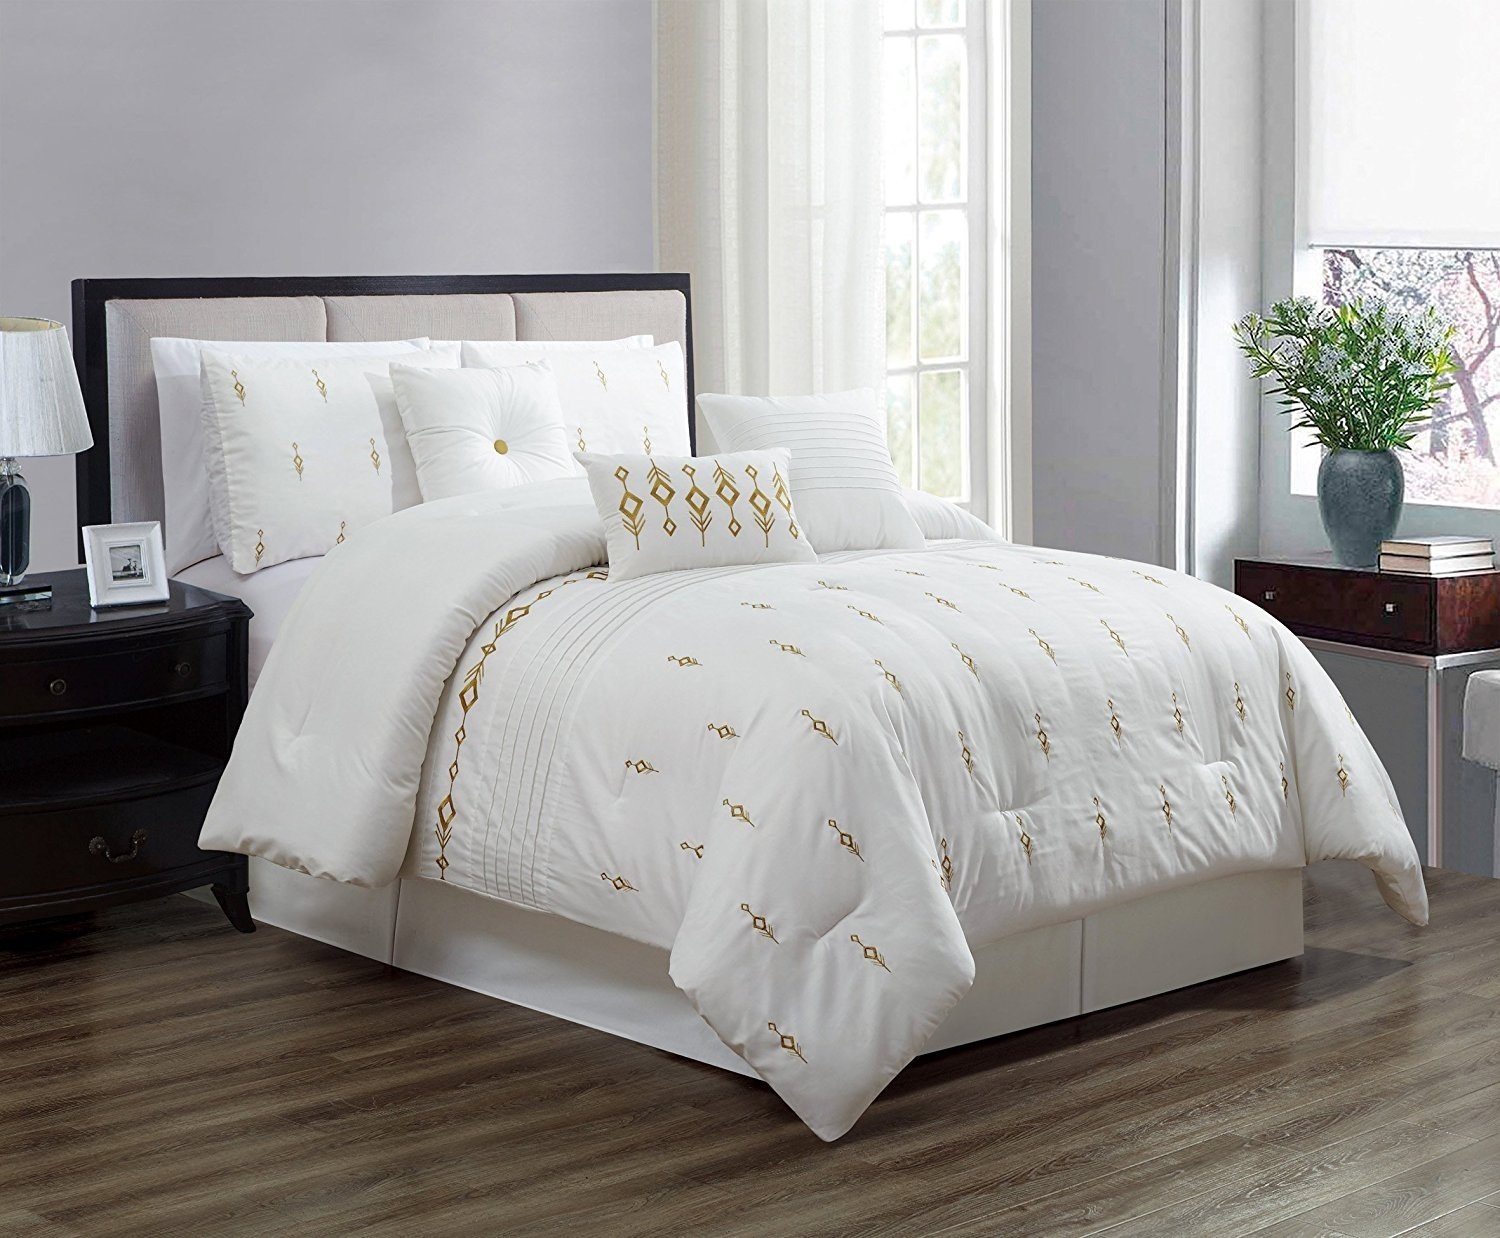 7 Piece Bedding set, White, Gold Embroidered Comforter with Accent pillows Bed in a Bag-Niamh (CalKing)